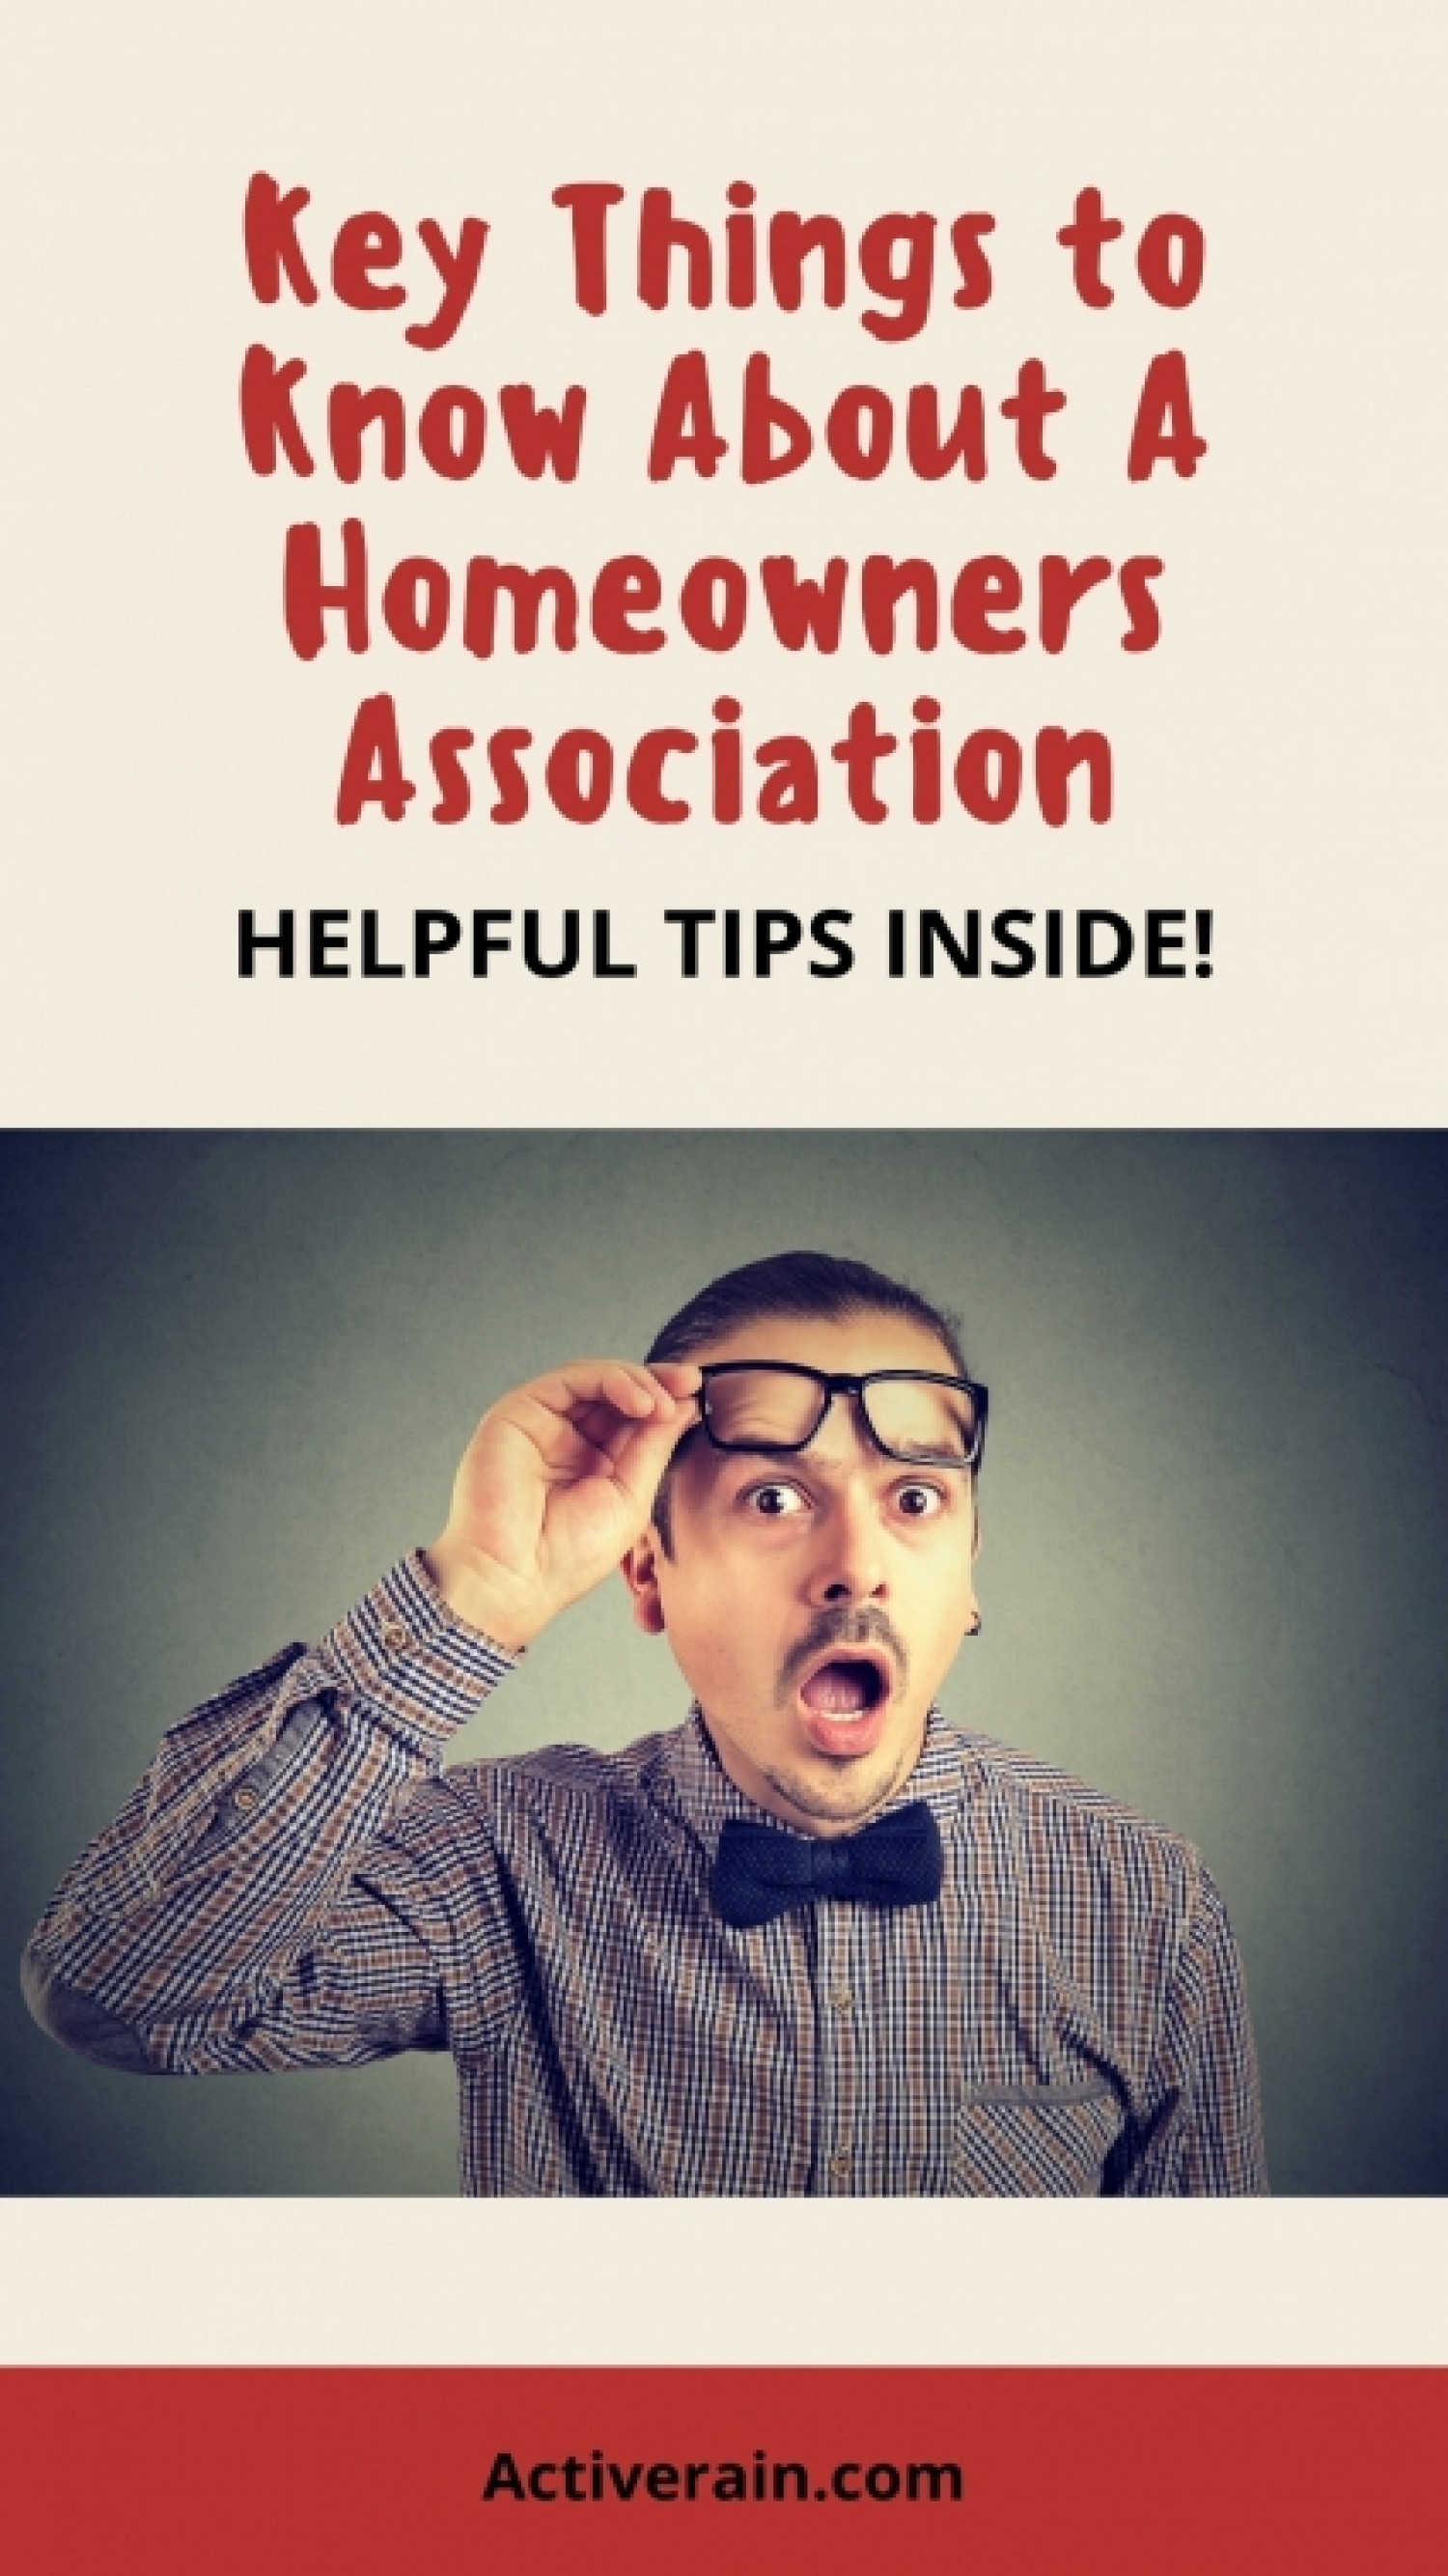 What Should I Know About Homeowners Associations Infographic